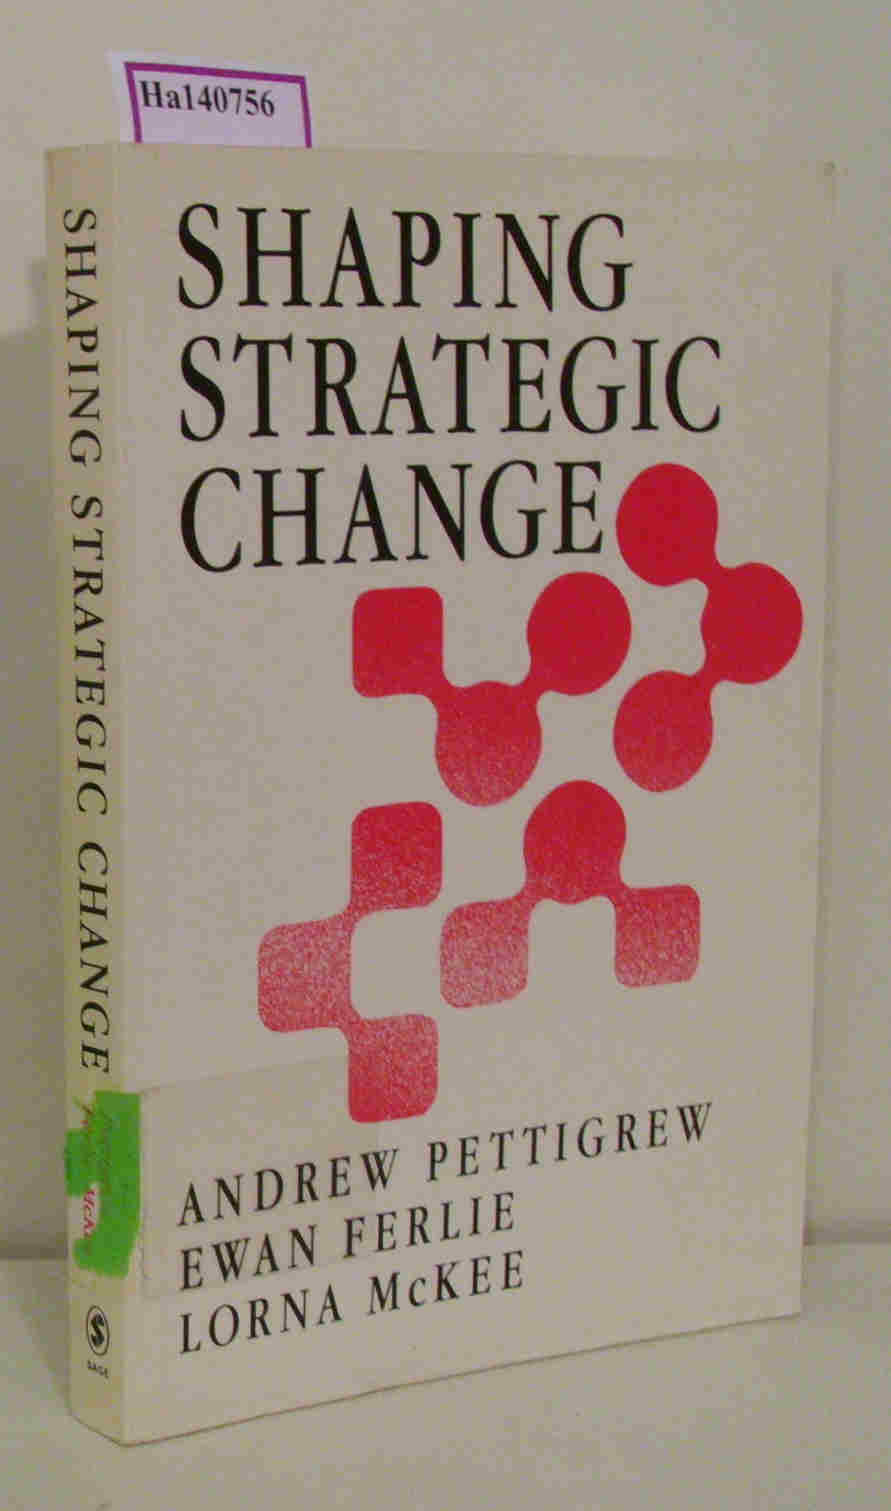 Shaping Strategic Change. Making Change in Large Organizations. The Case of the National Health Service.